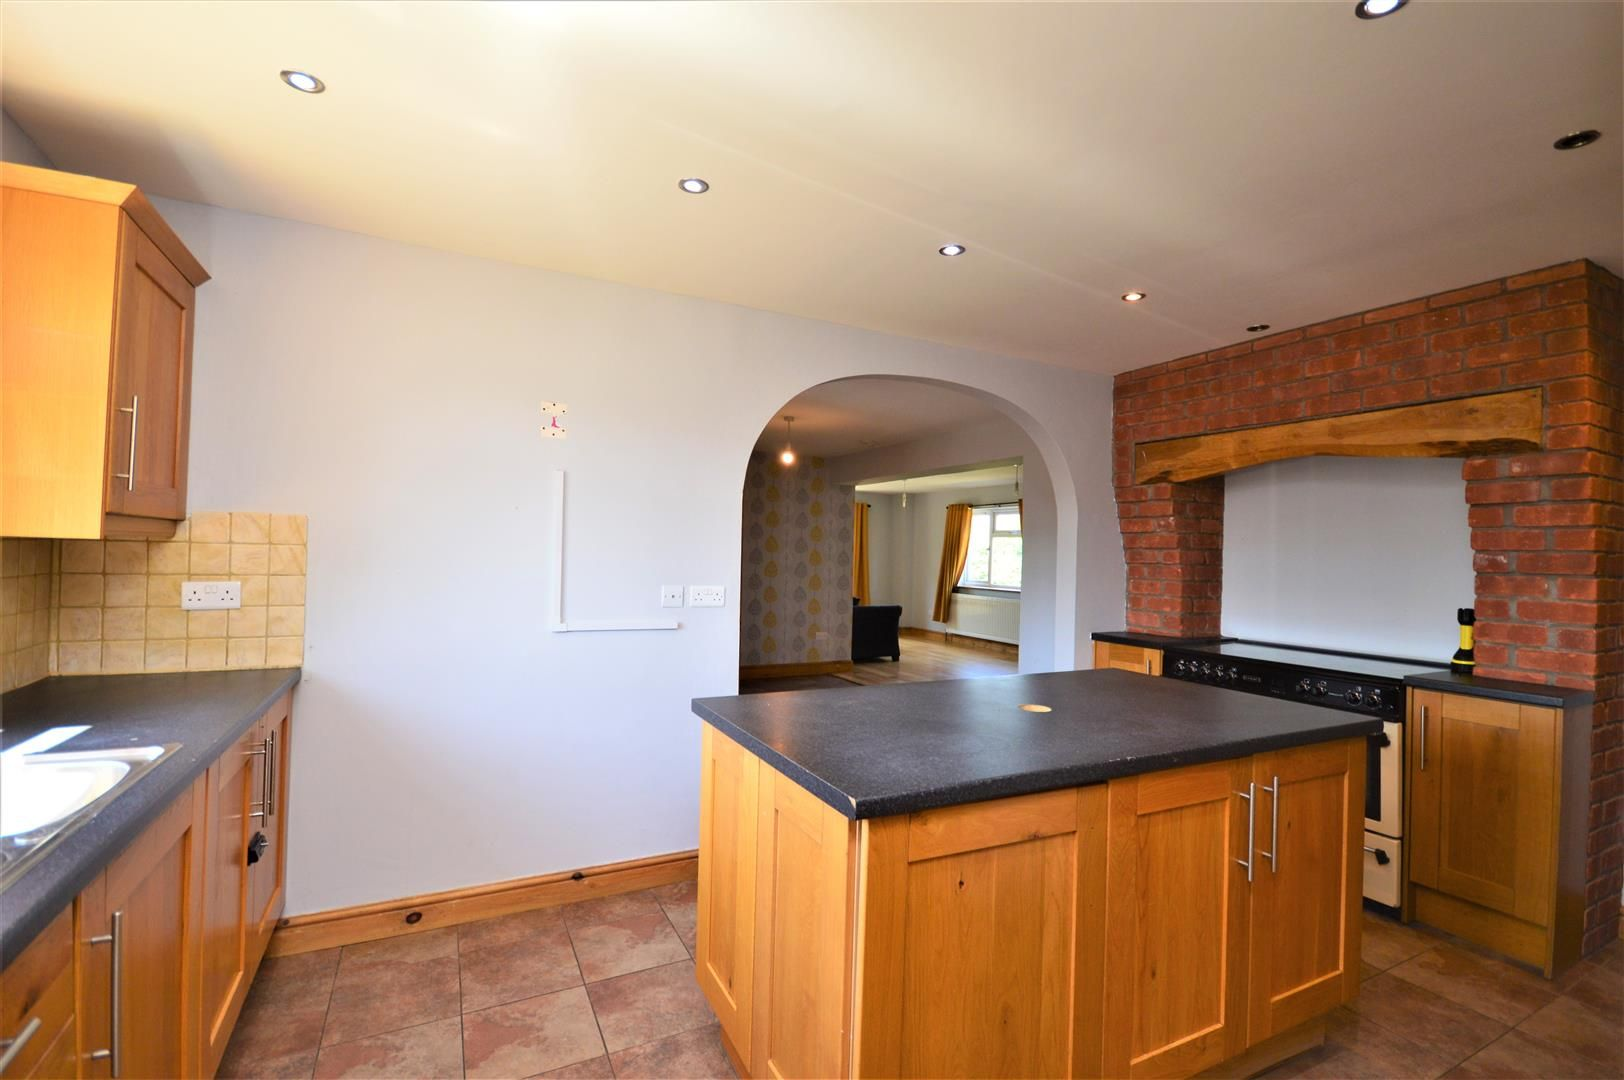 5 bed detached for sale in Sutton St. Nicholas  - Property Image 9